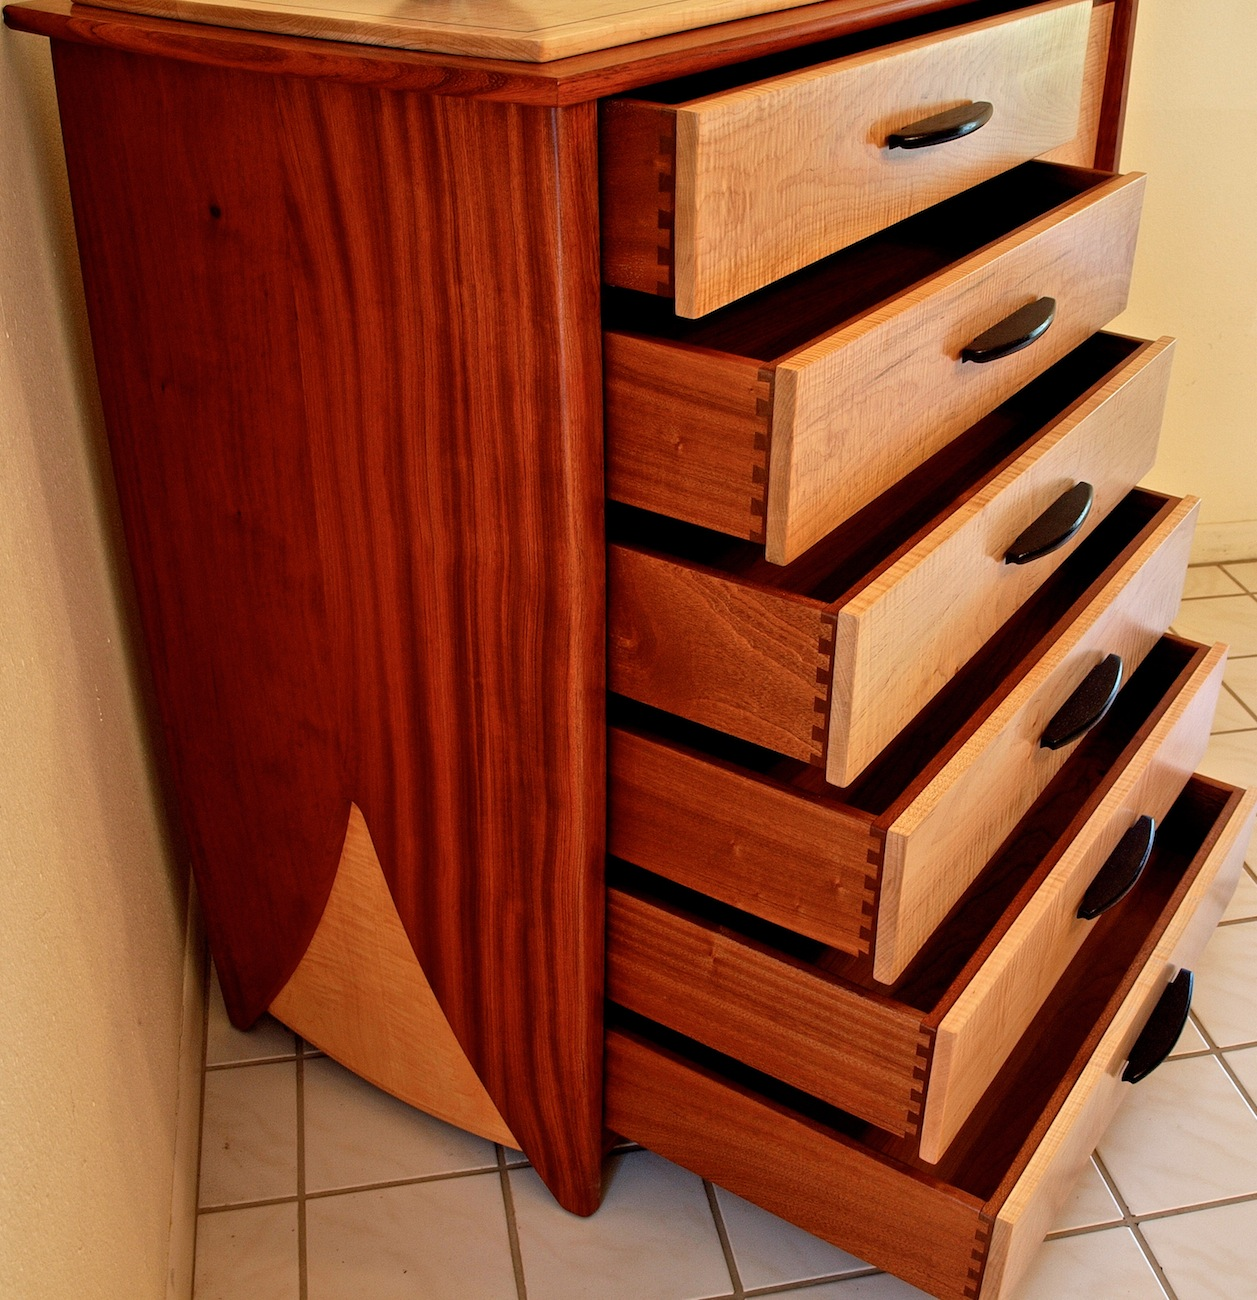 Dovetailed drawers louis fry a furniture maker 39 s blog - Making wood drawers ...